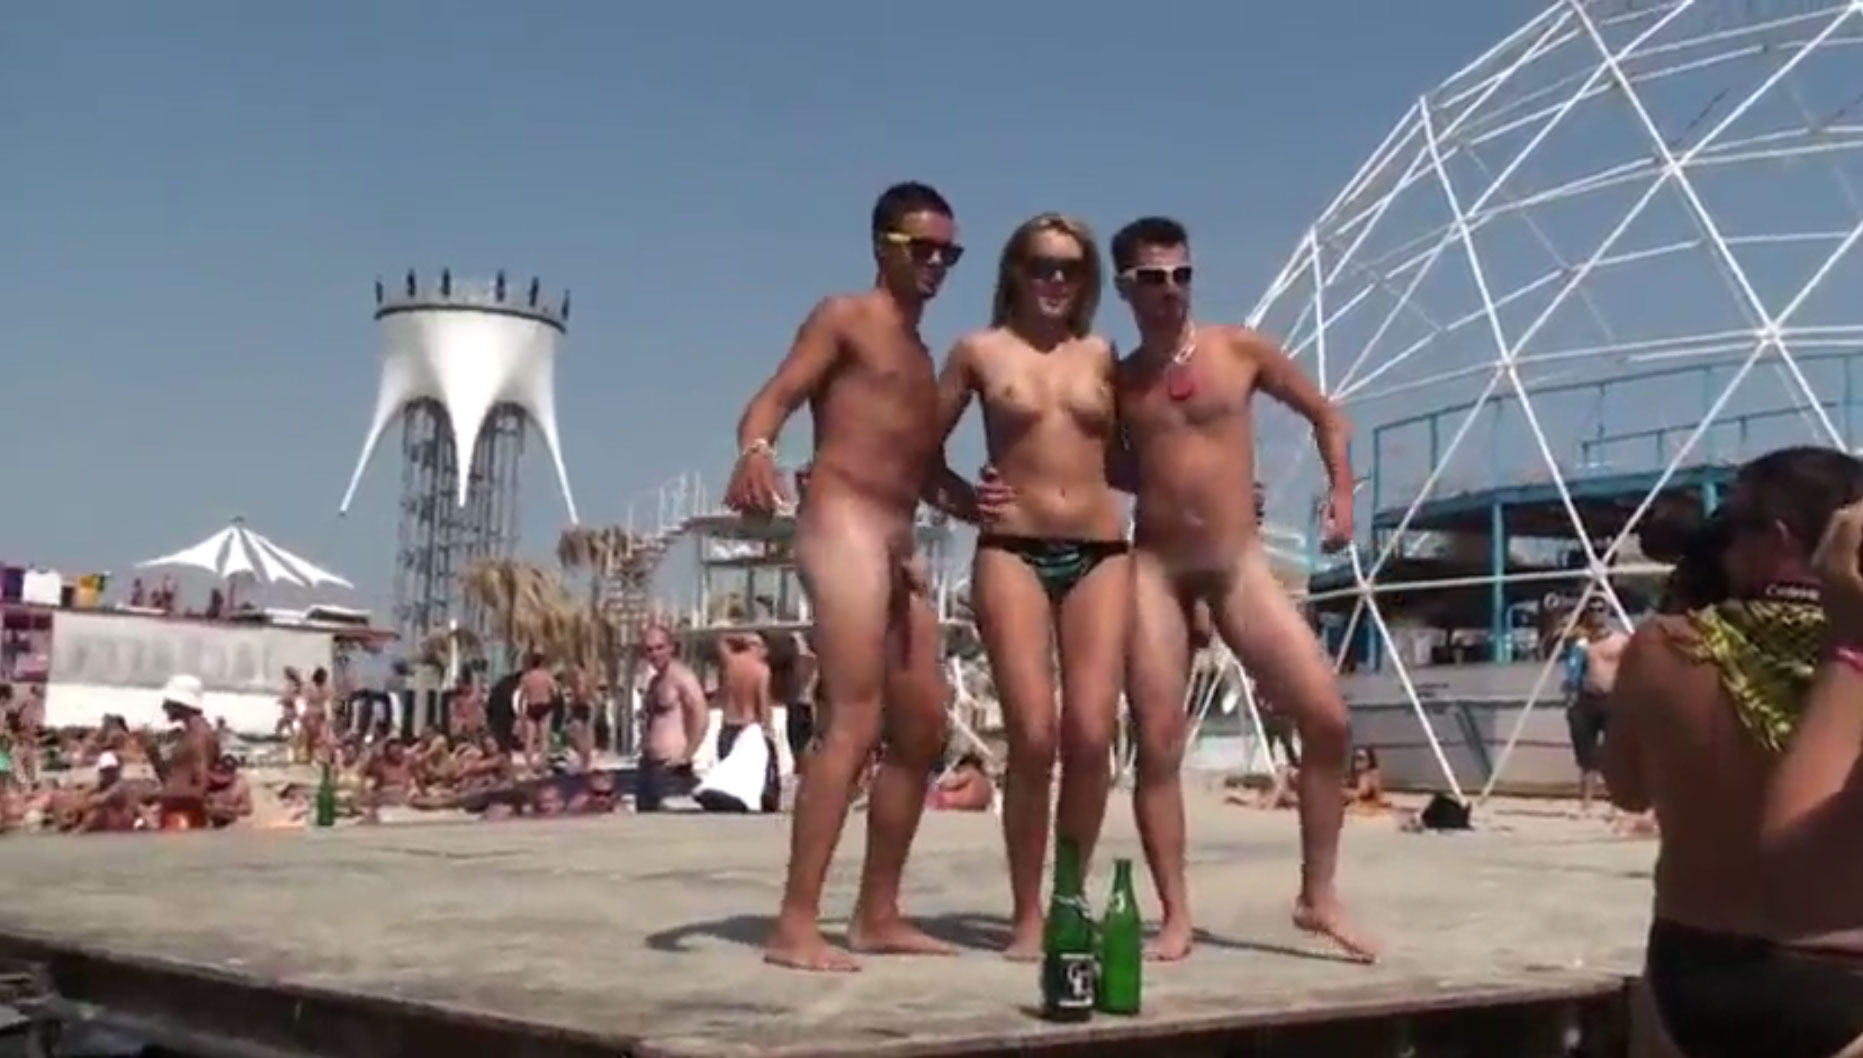 Topless girl dancing with 2 naked boys in festival